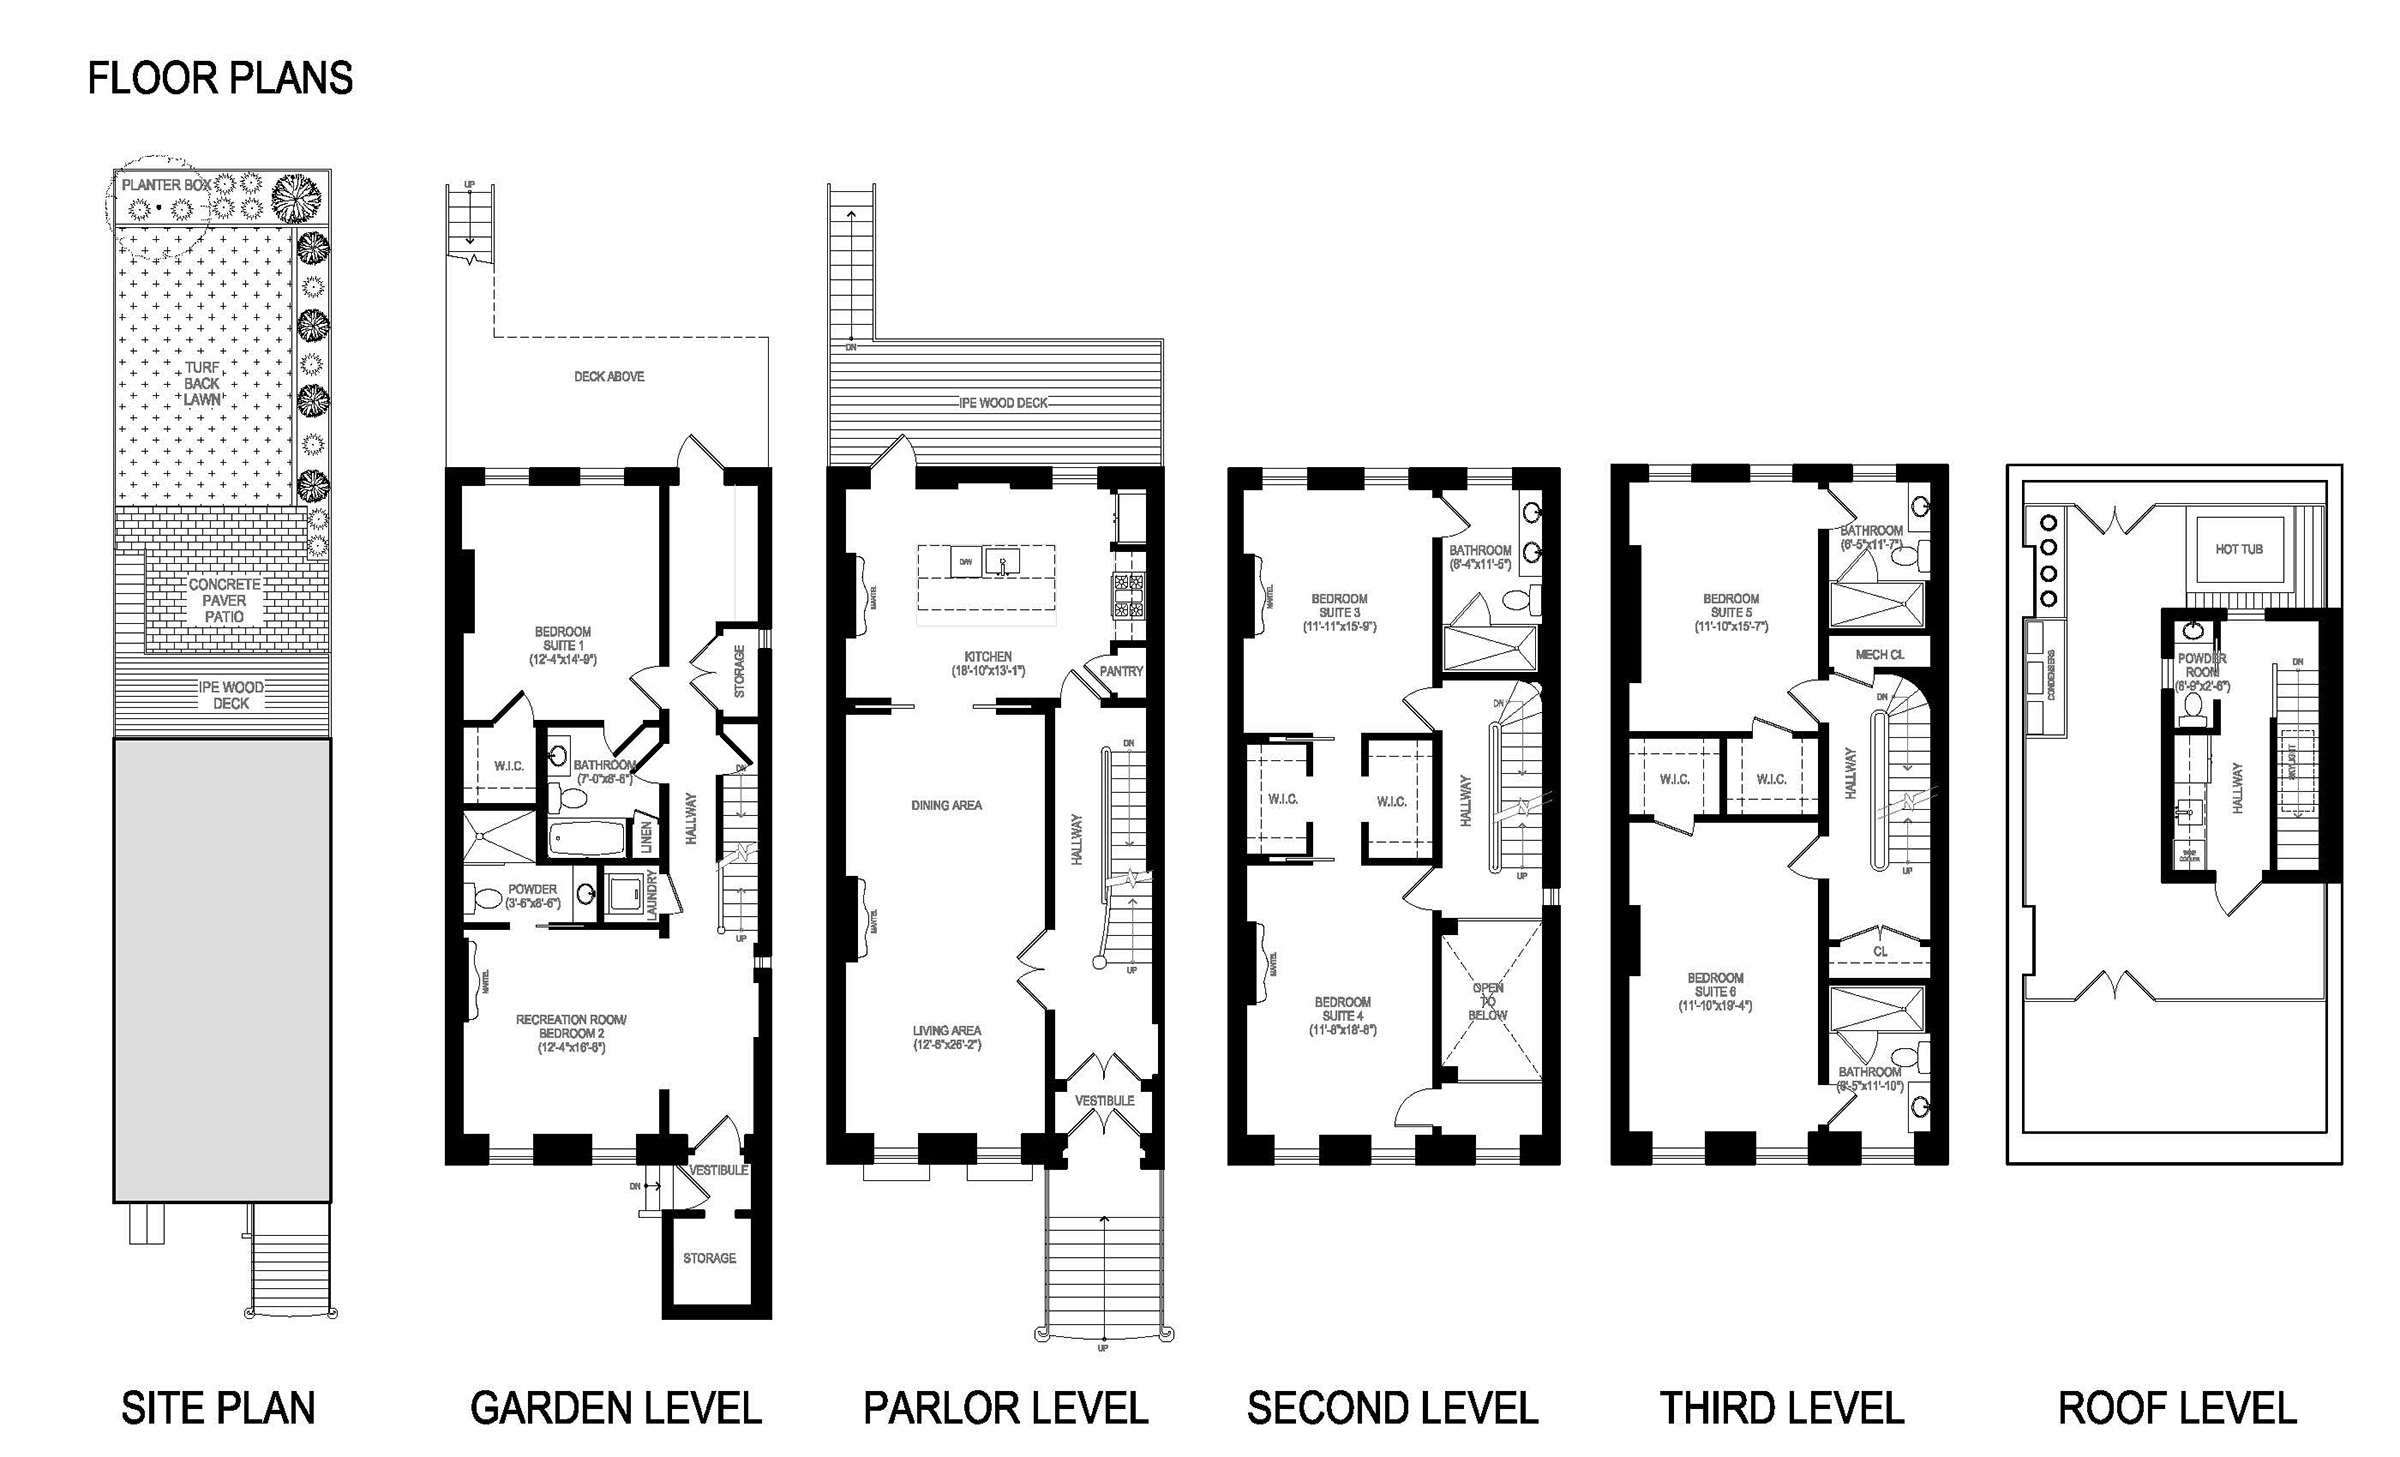 2016-02-22_Marketing Floor Plan_272 Lafayette Ave_web.jpg